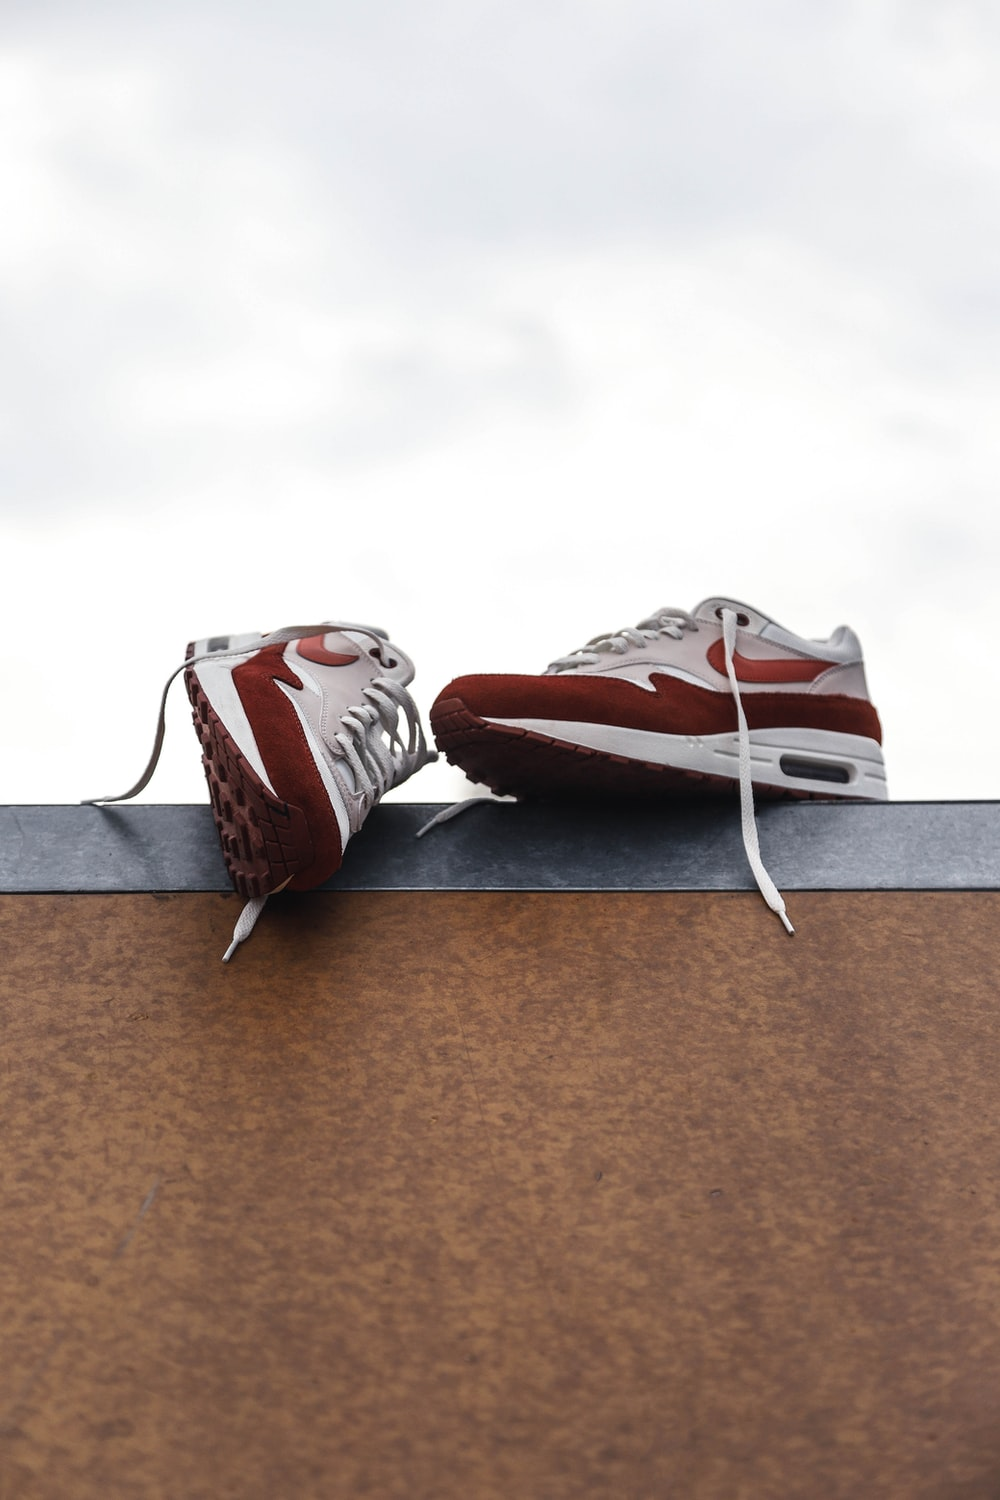 Nike Air Max 1 Premium Pictures Download Free Images On Unsplash